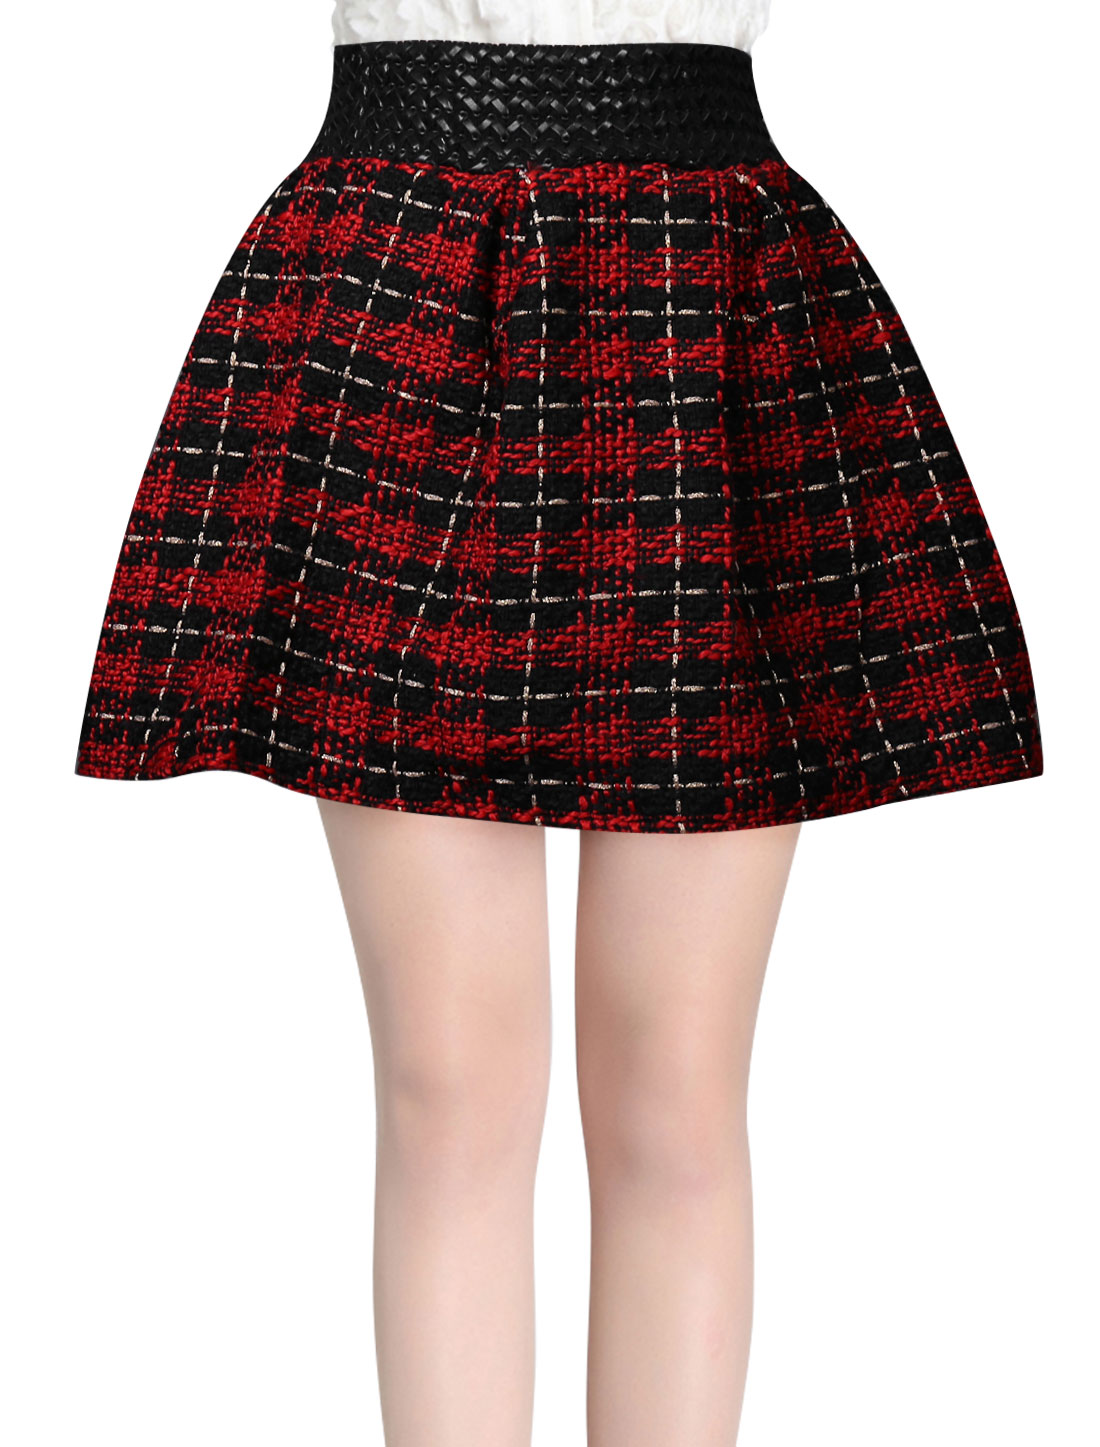 Women Stretchy Waist Intertexture Design Mini A-Line Skirt Warm Red Black XS